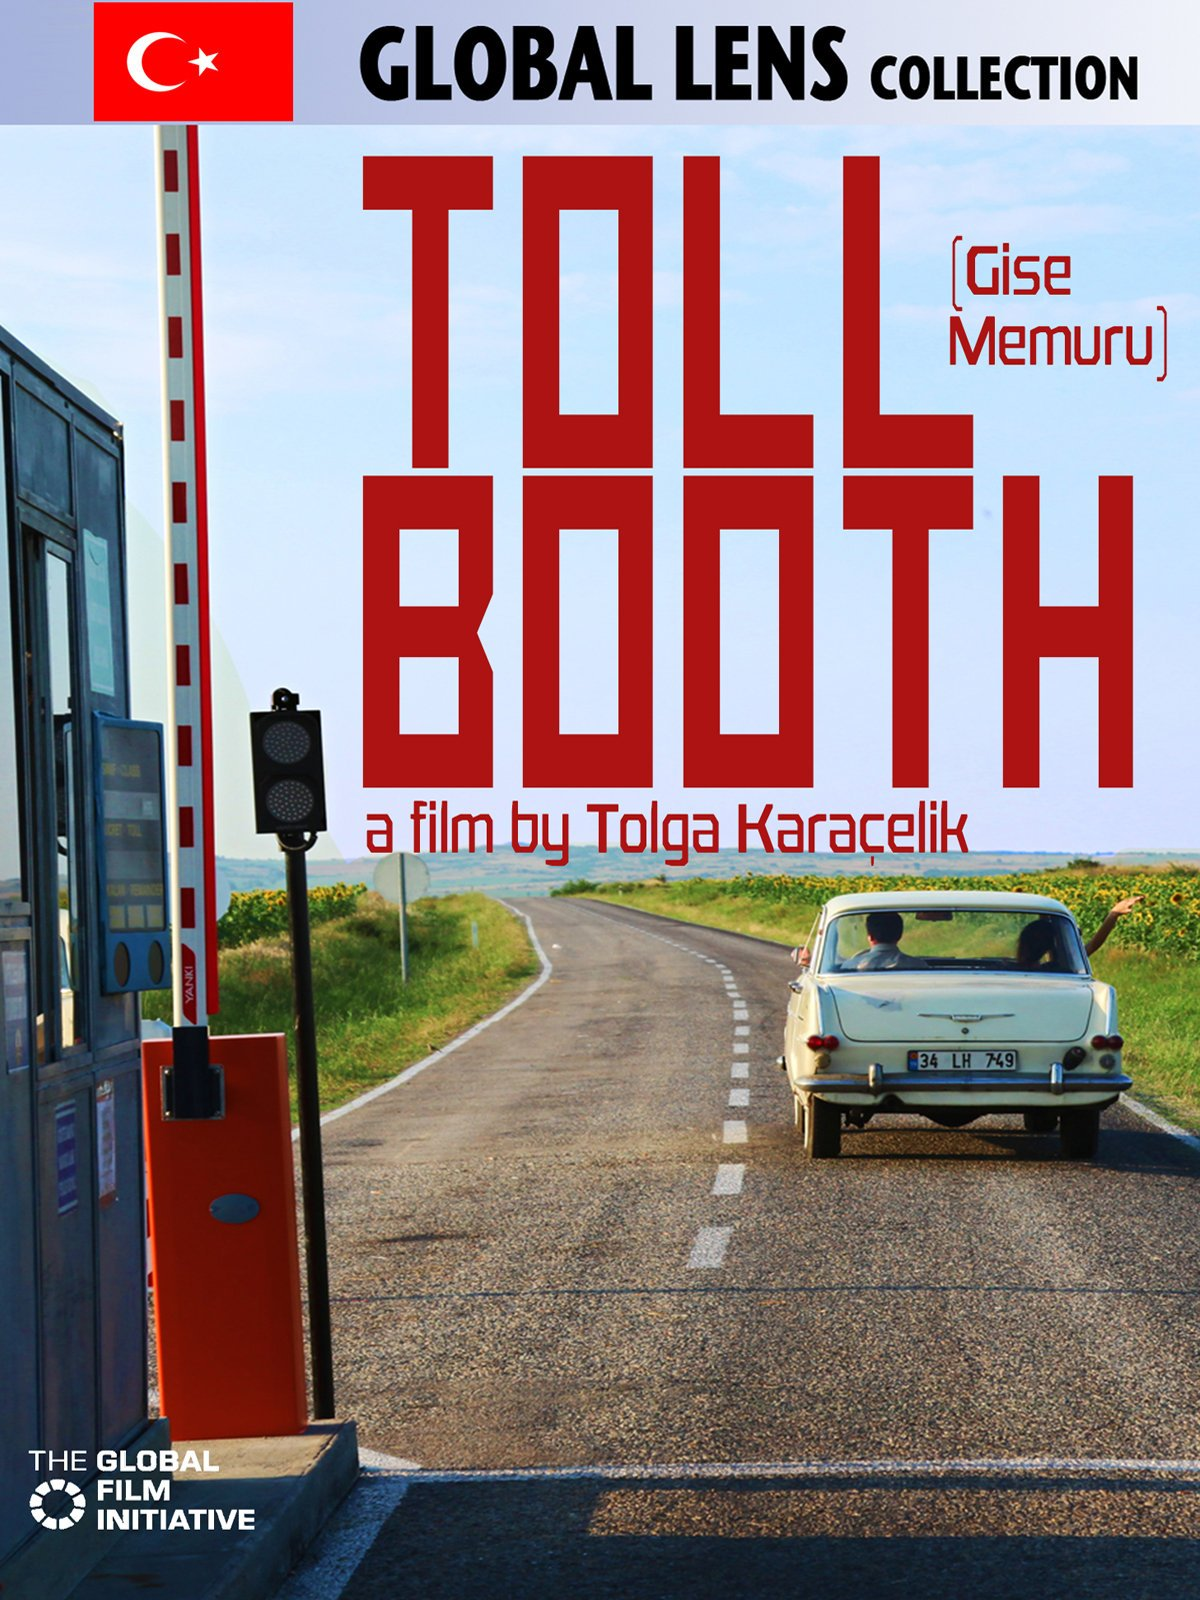 Toll Booth (Gise Memuru) (English Subtitled) by